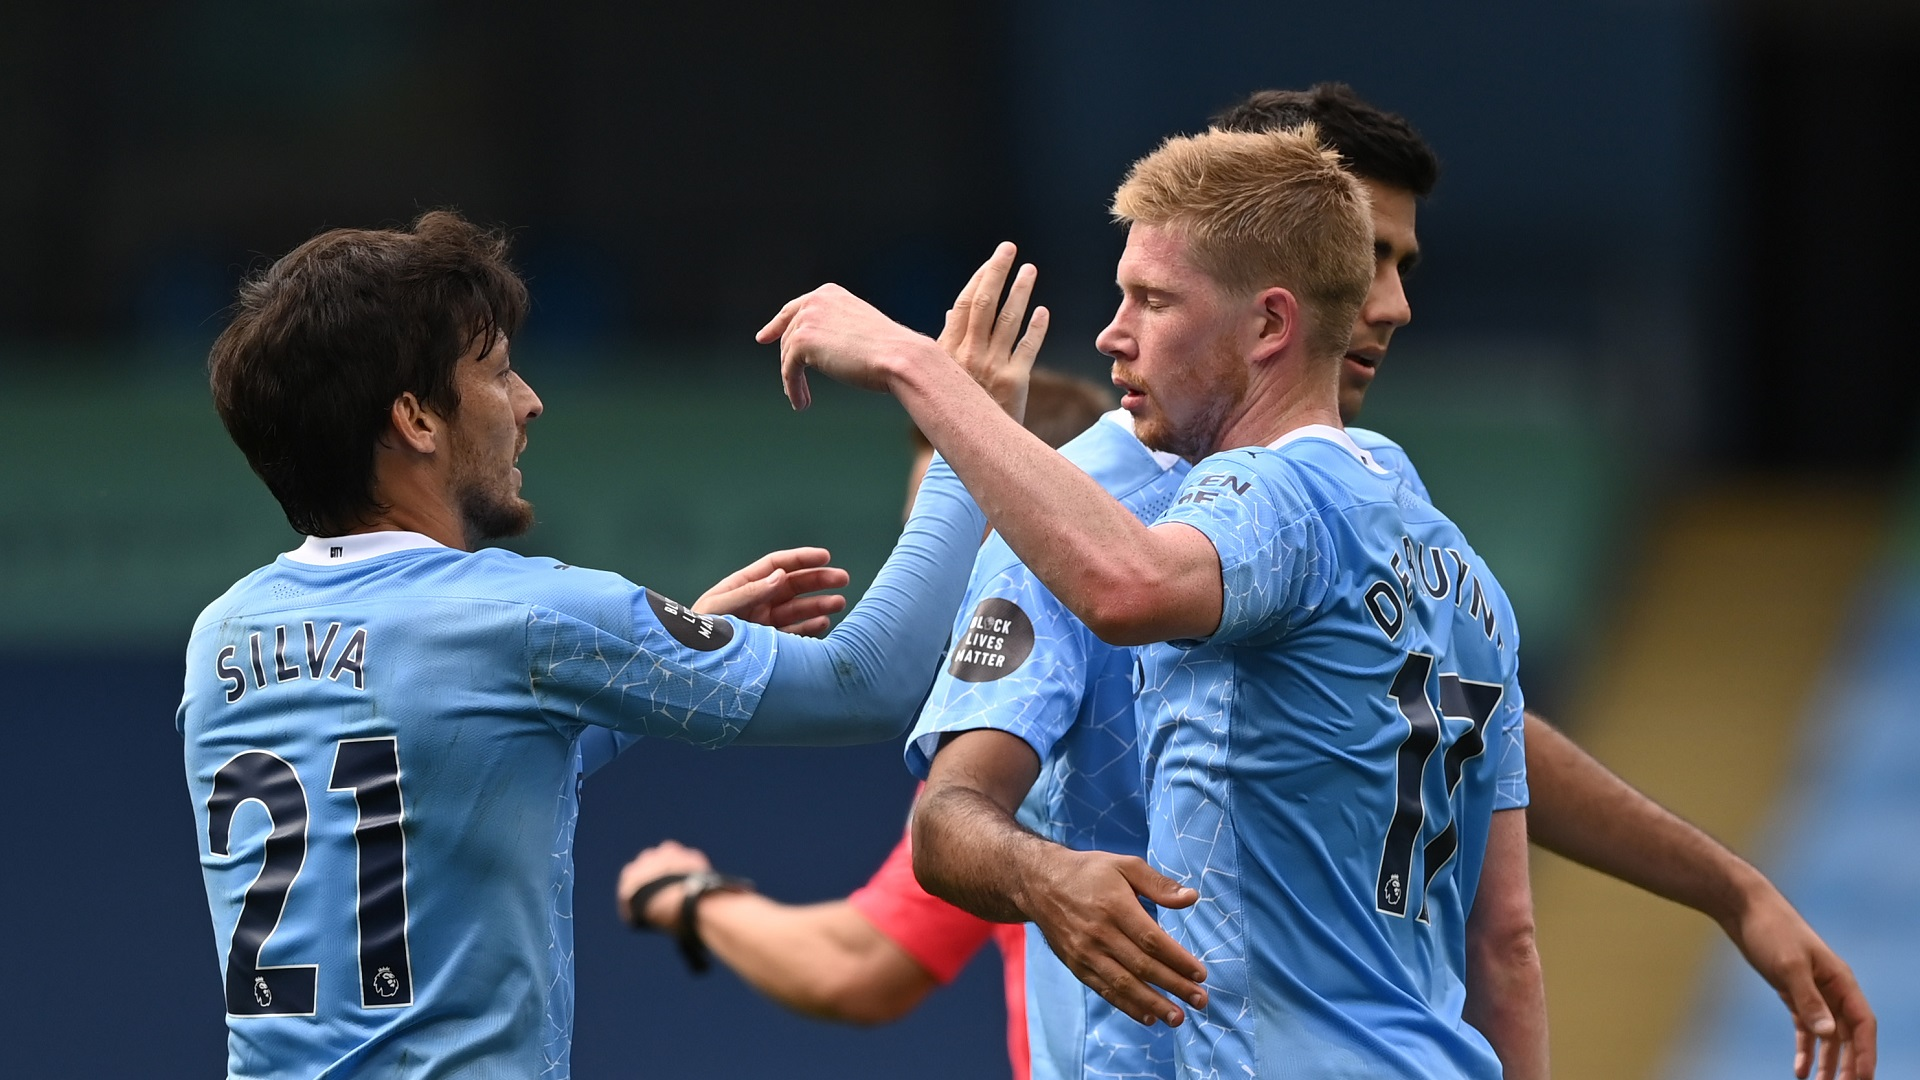 De Bruyne equals Henry's Premier League assist record in convincing Man City victory over Norwich